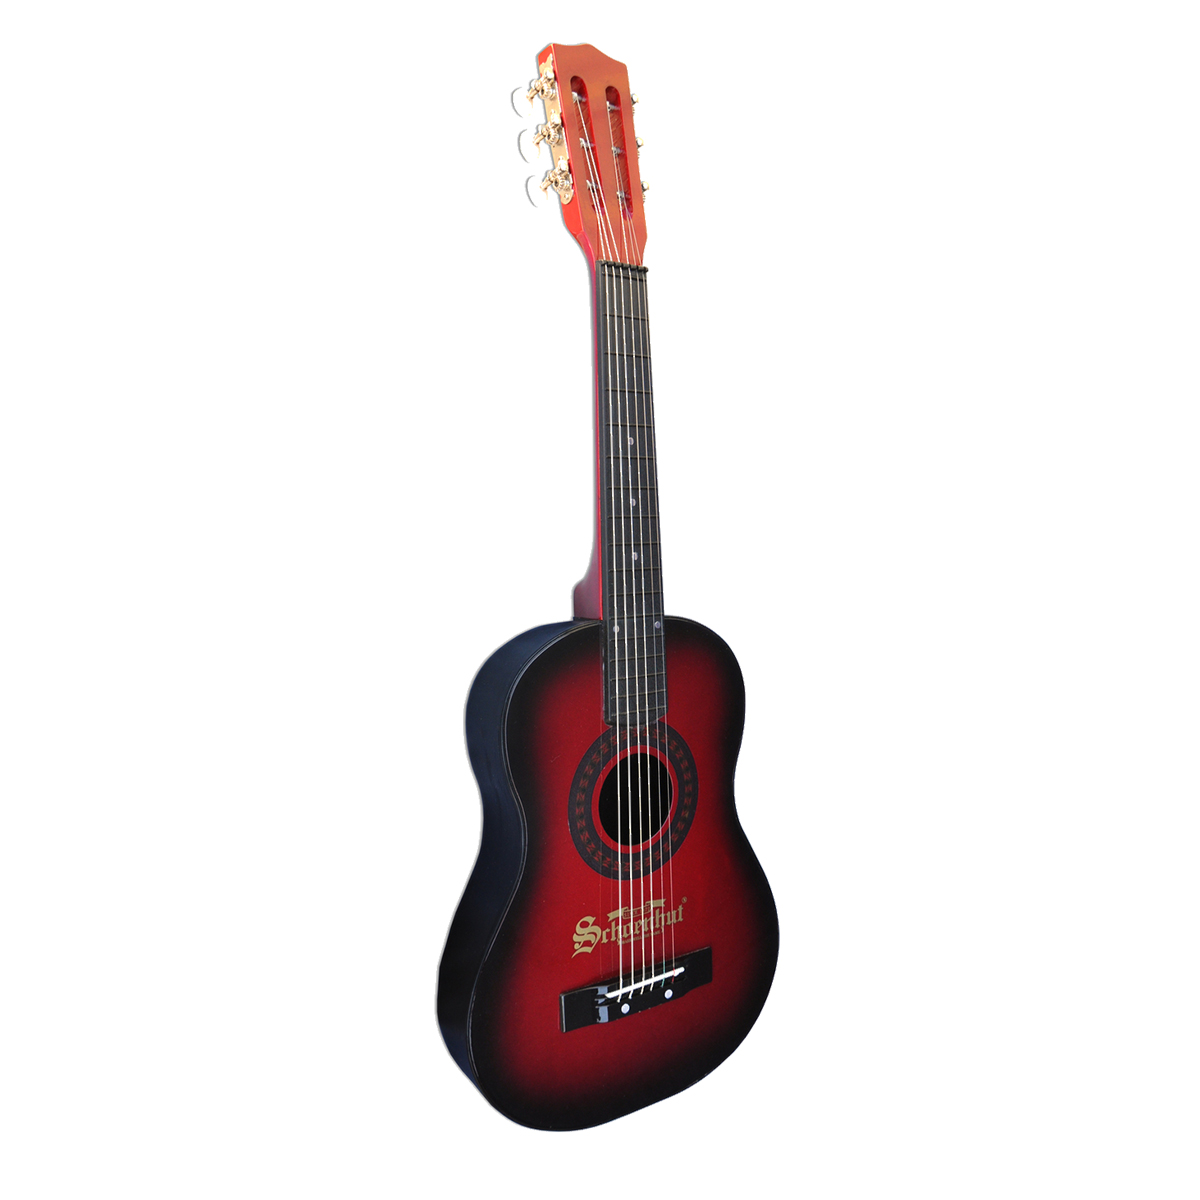 Schoenhut Guitar in Red & Black